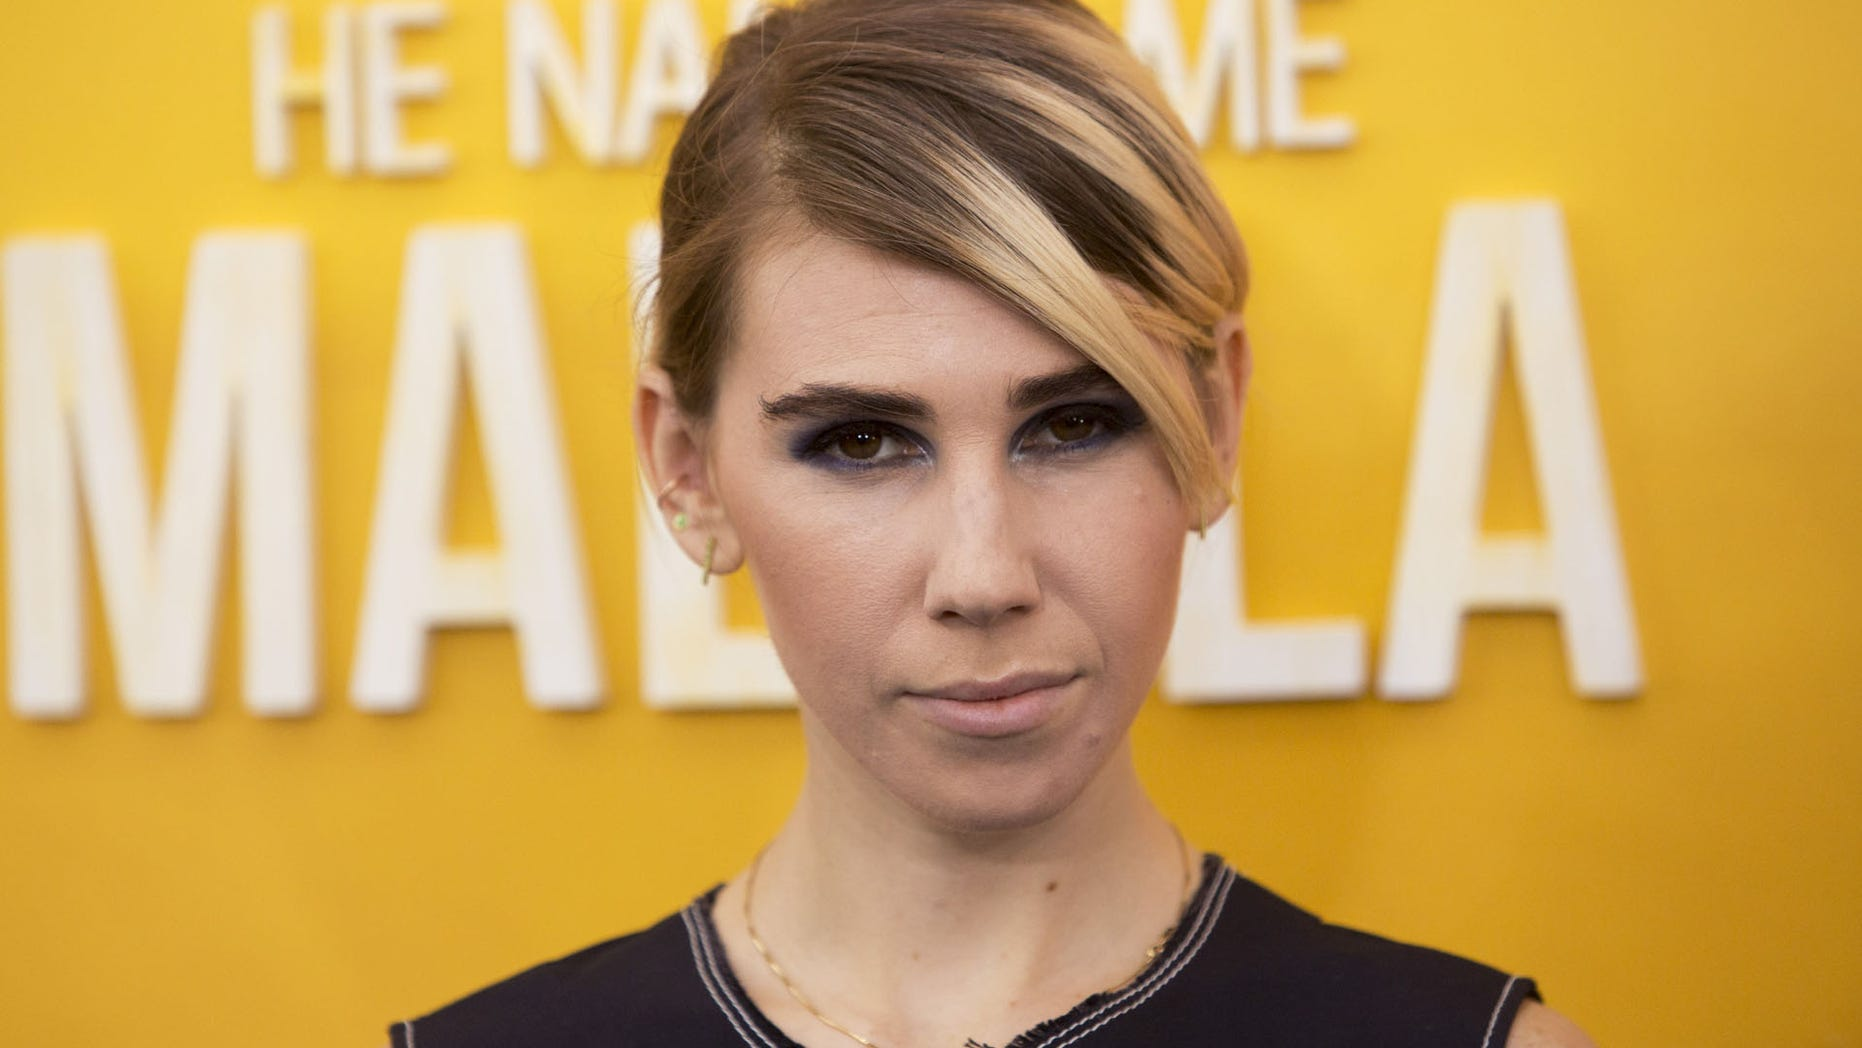 """Actress Zosia Mamet attends the premiere of """"He Named Me Malala"""" at the Ziegfeld Theater in Manhattan, New York, September 24, 2015. REUTERS/Andrew Kelly - RTX1SCUP"""